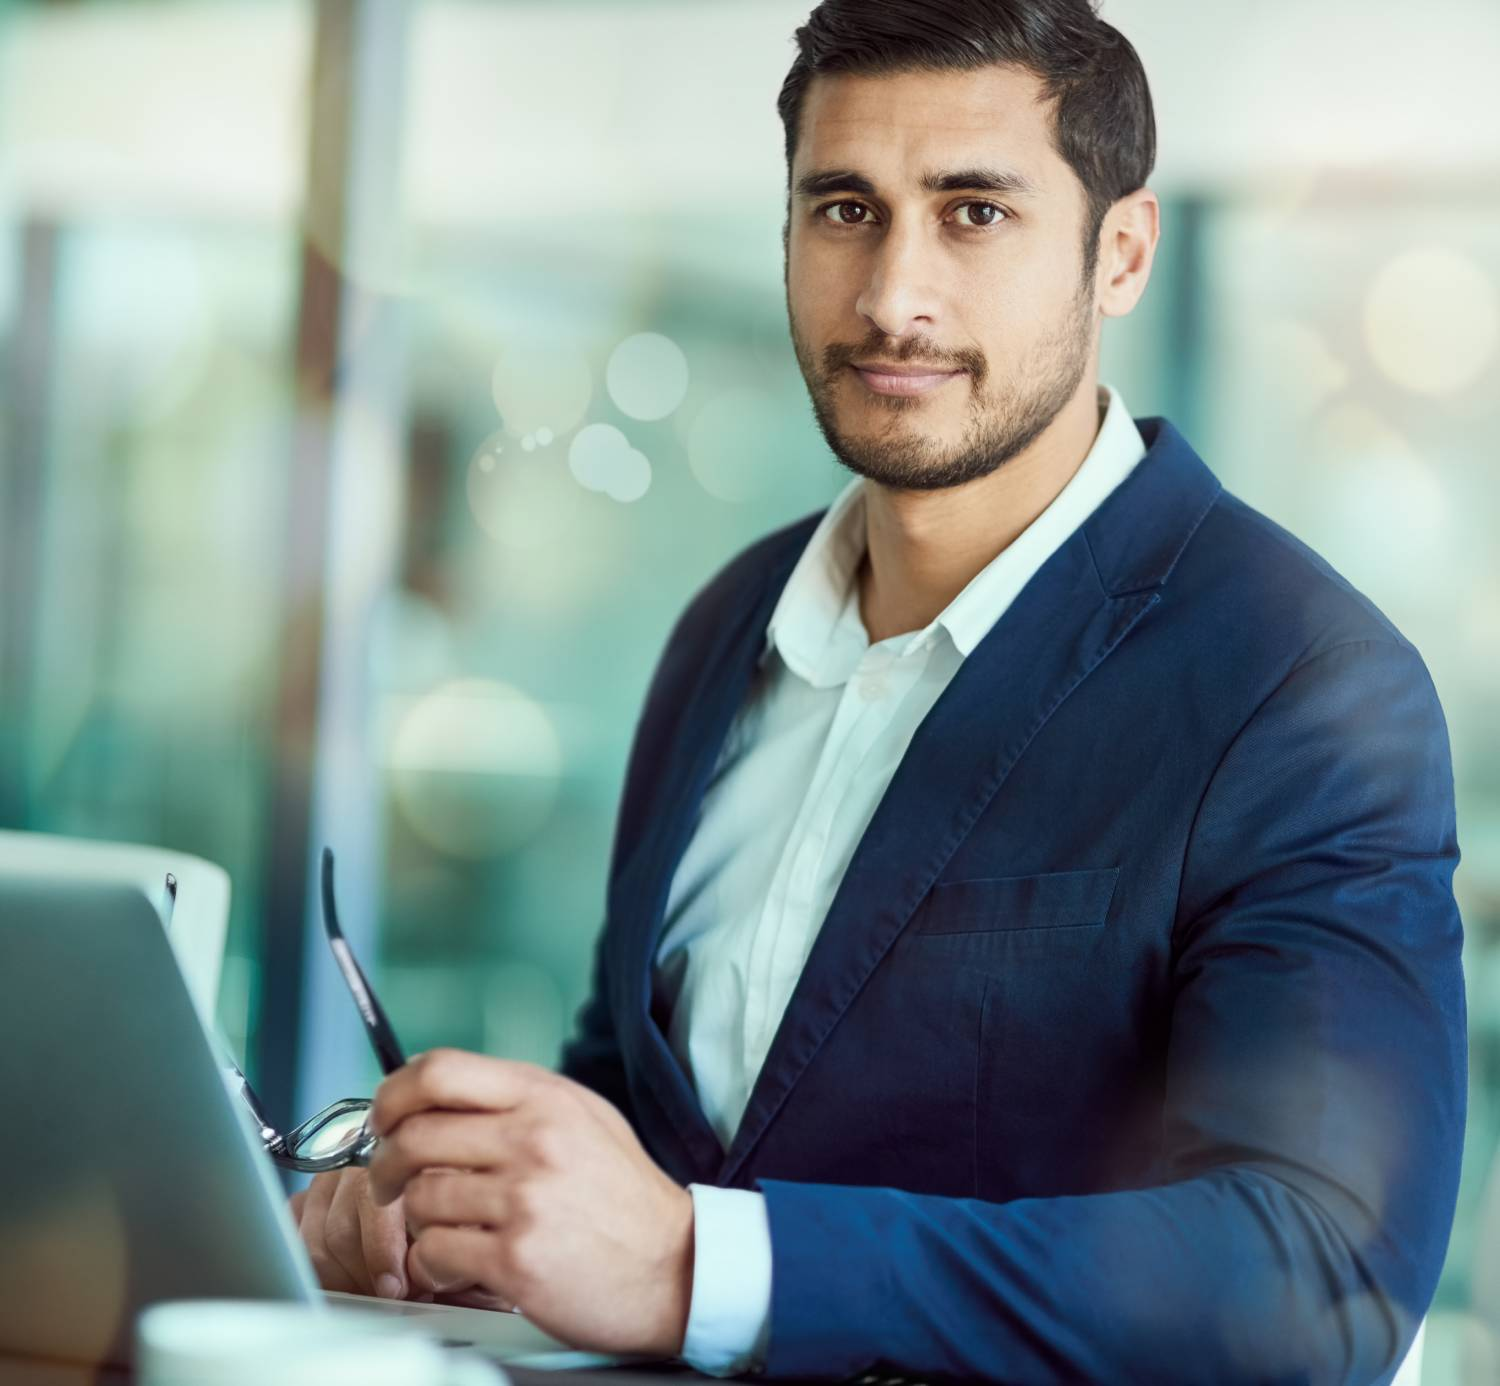 Businessman contemplates which data sources may be retired due to AI